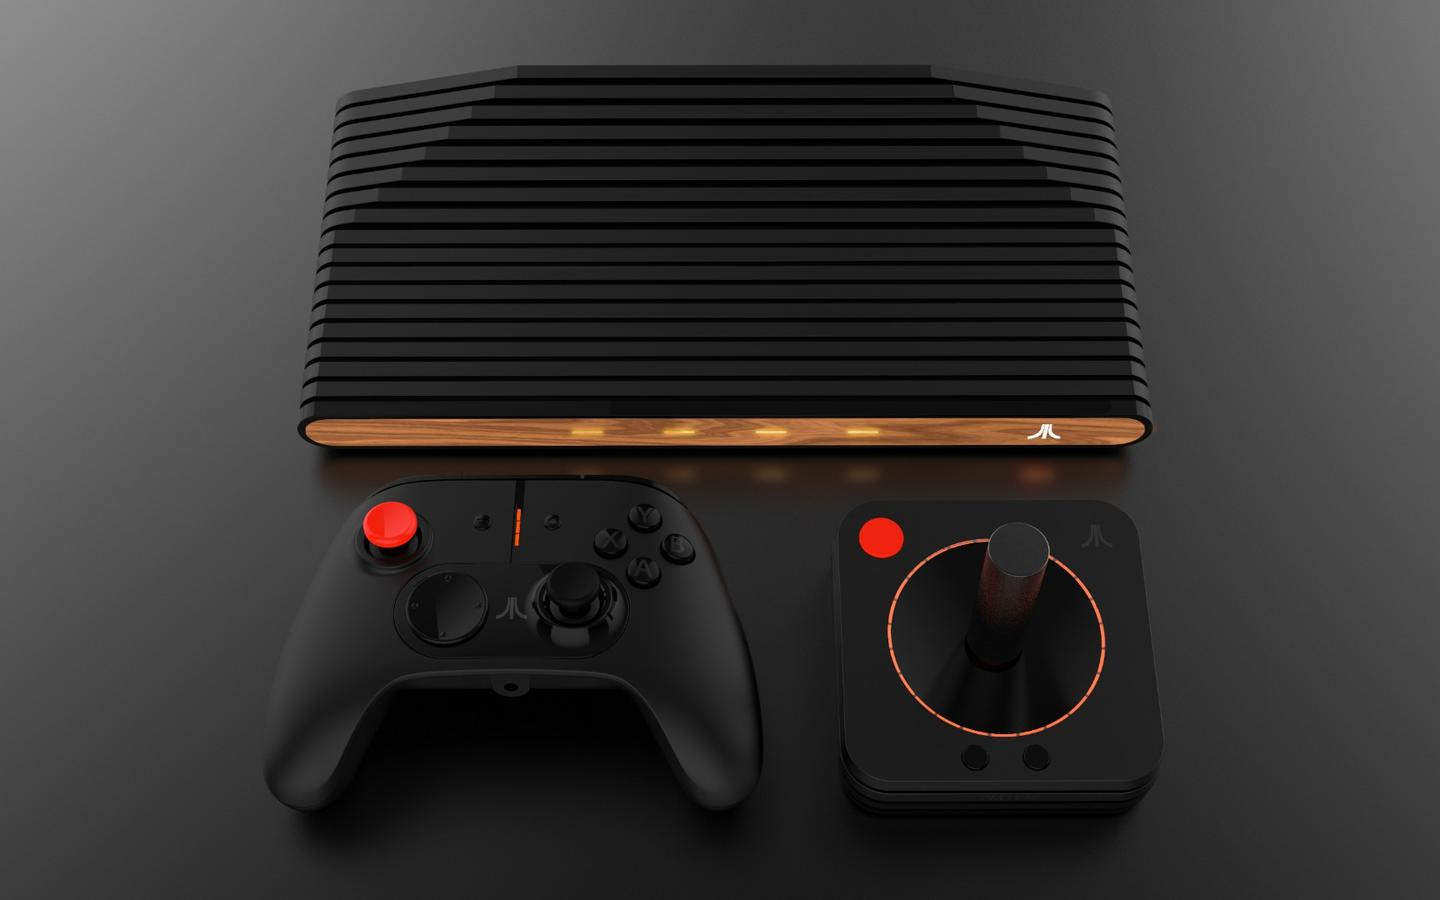 The Atari VCS will be playable with both a Classic Joystick and a new Modern Controller